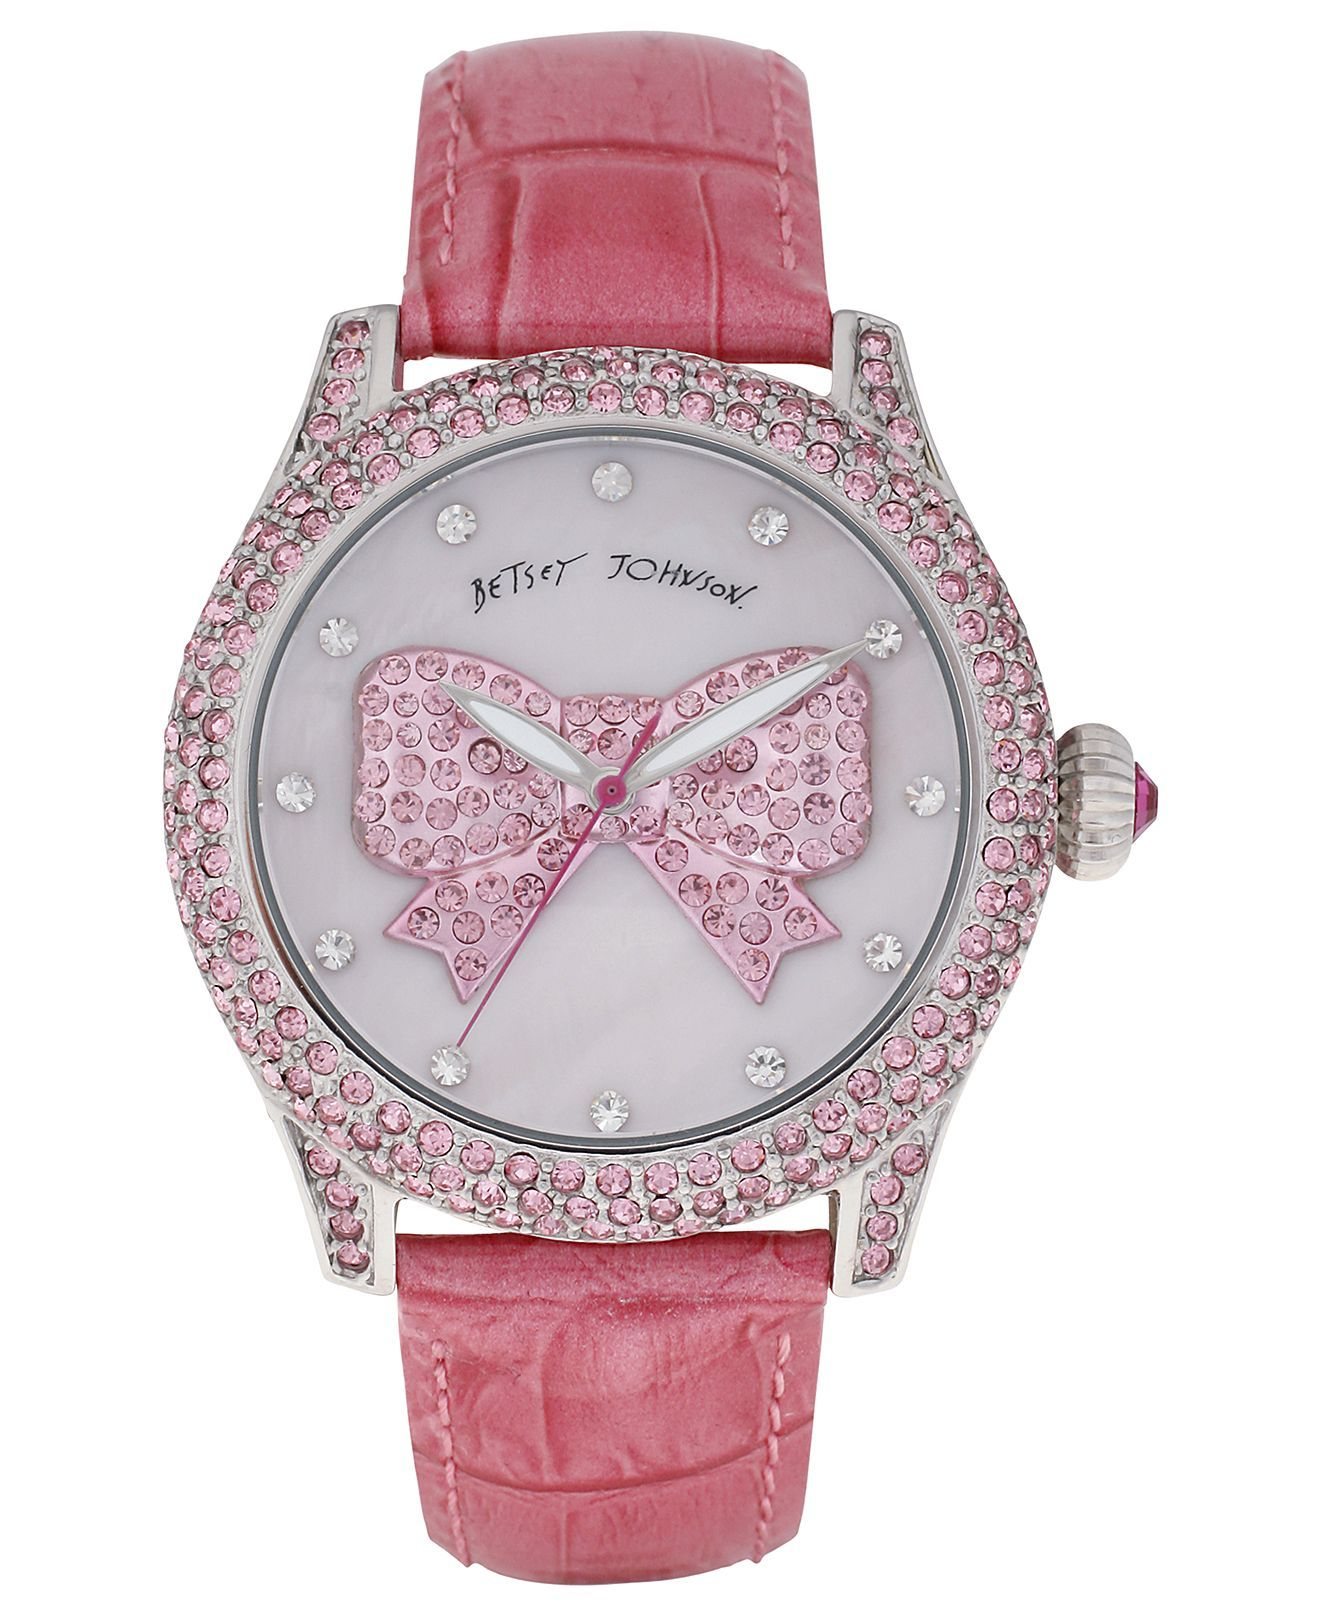 website womens international pnul en versace watches store bluepalazzoempirewatch online women for official pink red